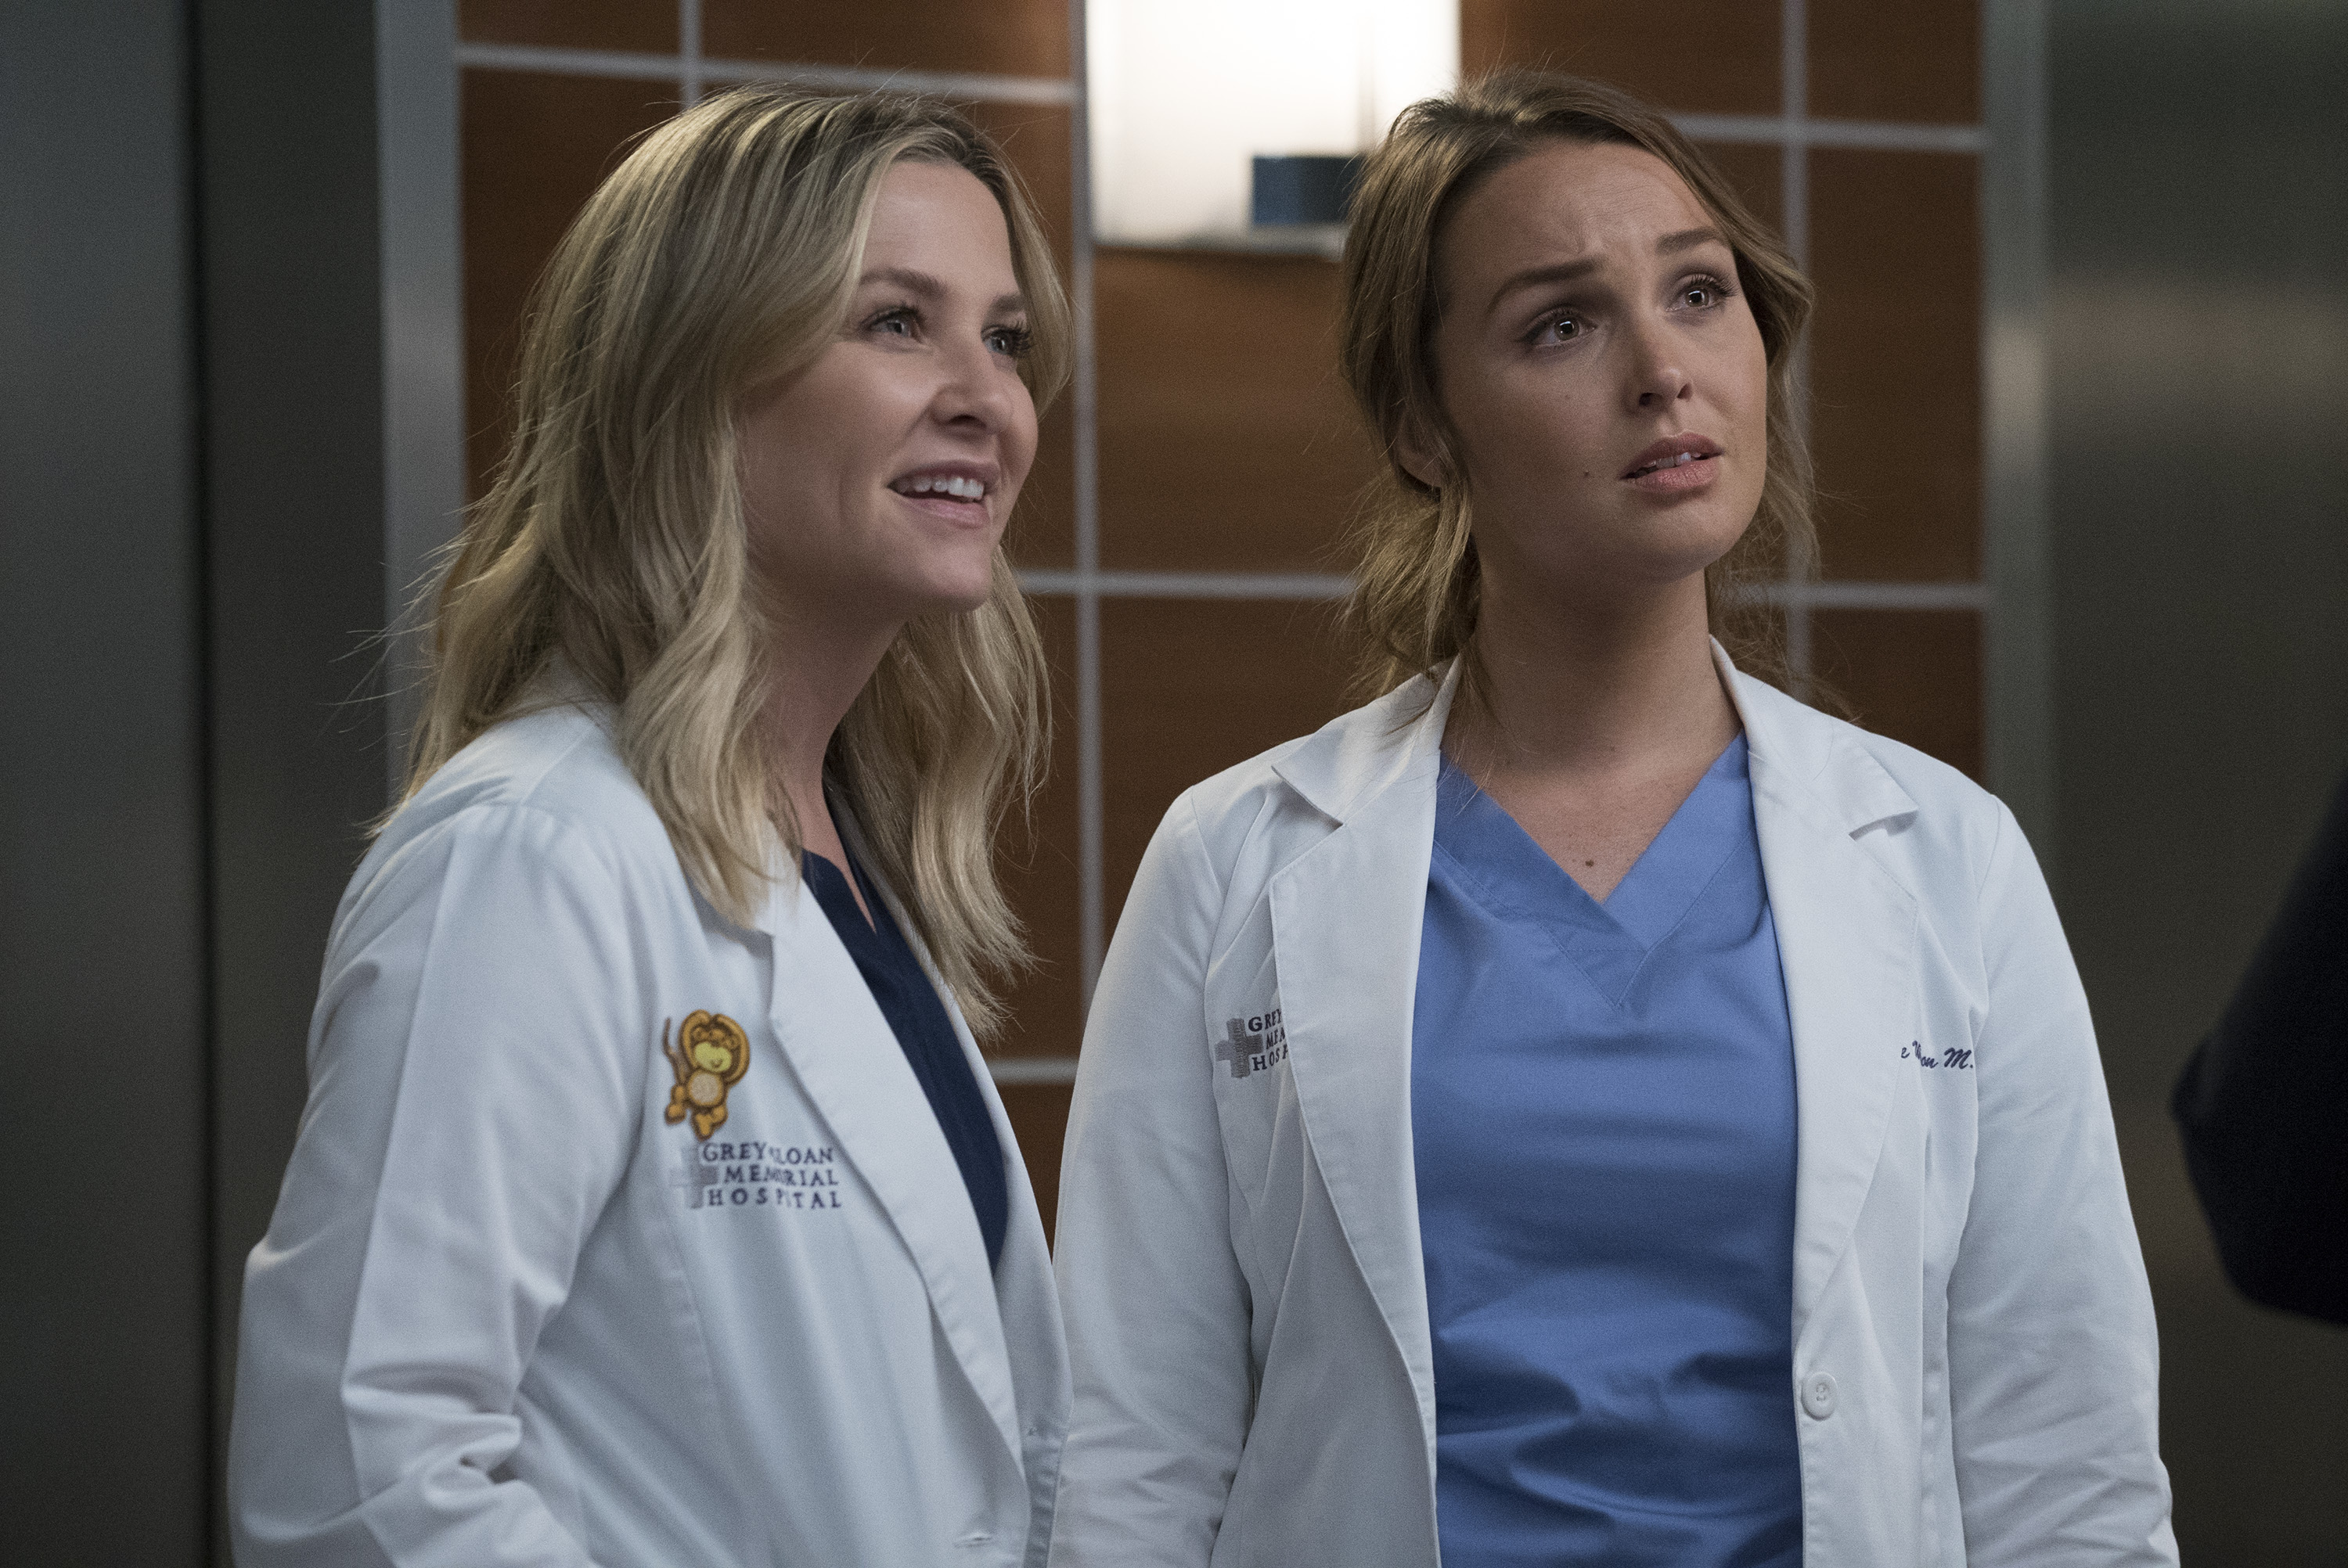 """GREY'S ANATOMY - """"Four Seasons in One Day"""" - Jo finally faces her estranged, abusive husband Paul Stadler, while Grey Sloan continues to work with the FBI after a hacker has compromised the hospital's computer system, on the midseason return of """"Grey's Anatomy,"""" THURSDAY, JAN. 18 (8:00-9:00 p.m. EST), on The ABC Television Network. (ABC/Richard Cartwright)JESSICA CAPSHAW, CAMILLA LUDDINGTON"""